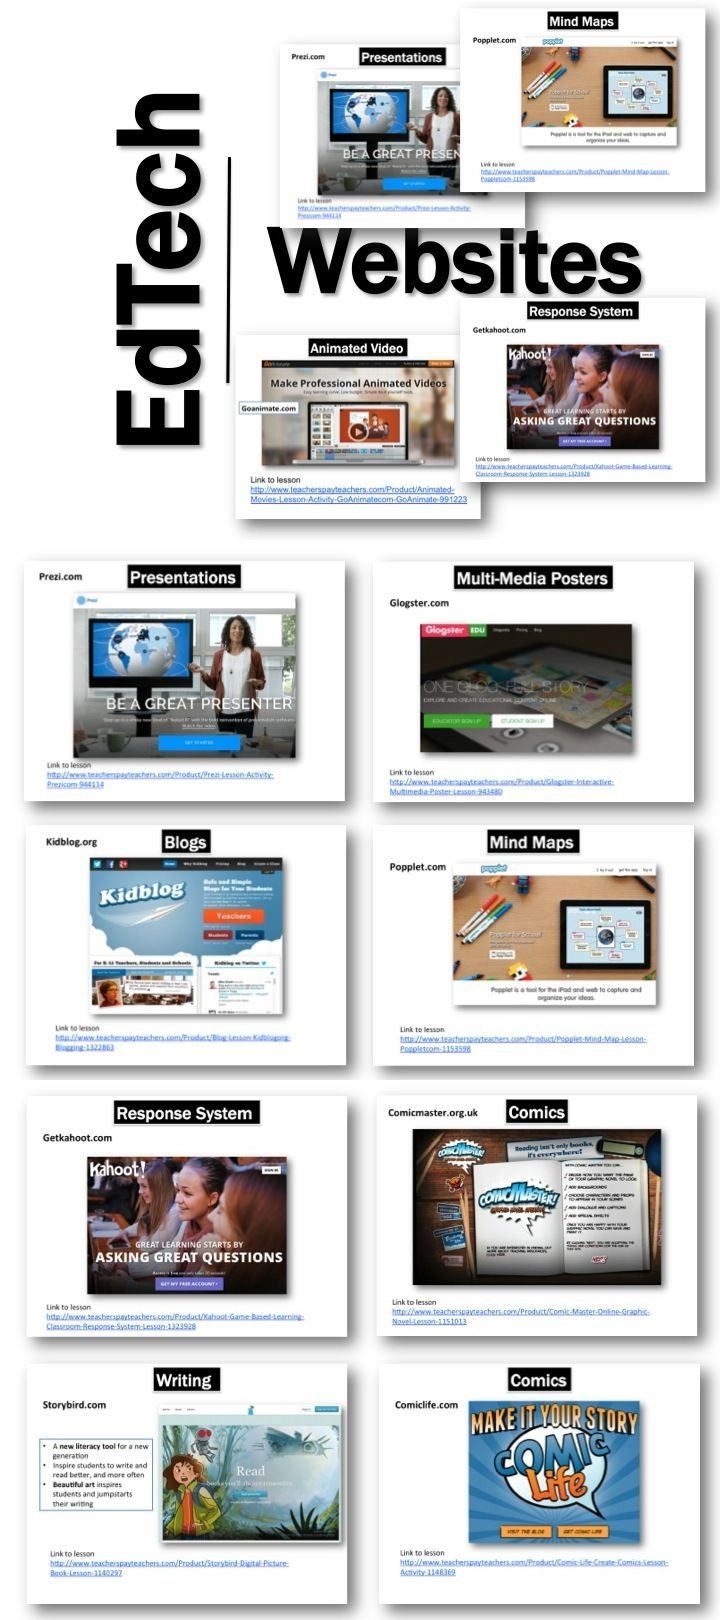 A free collection of Educational Technology Websites divided into categories. Links to lessons for each website. TOPICS 1. Presentations (Prezi, Haiku Deck) 2. Multi-Media Posters (Glogster) 3. Blogs (Kidblog) 4. Mind Maps (Popplet, Slatebox) 5. Online Response System (Kahoot)